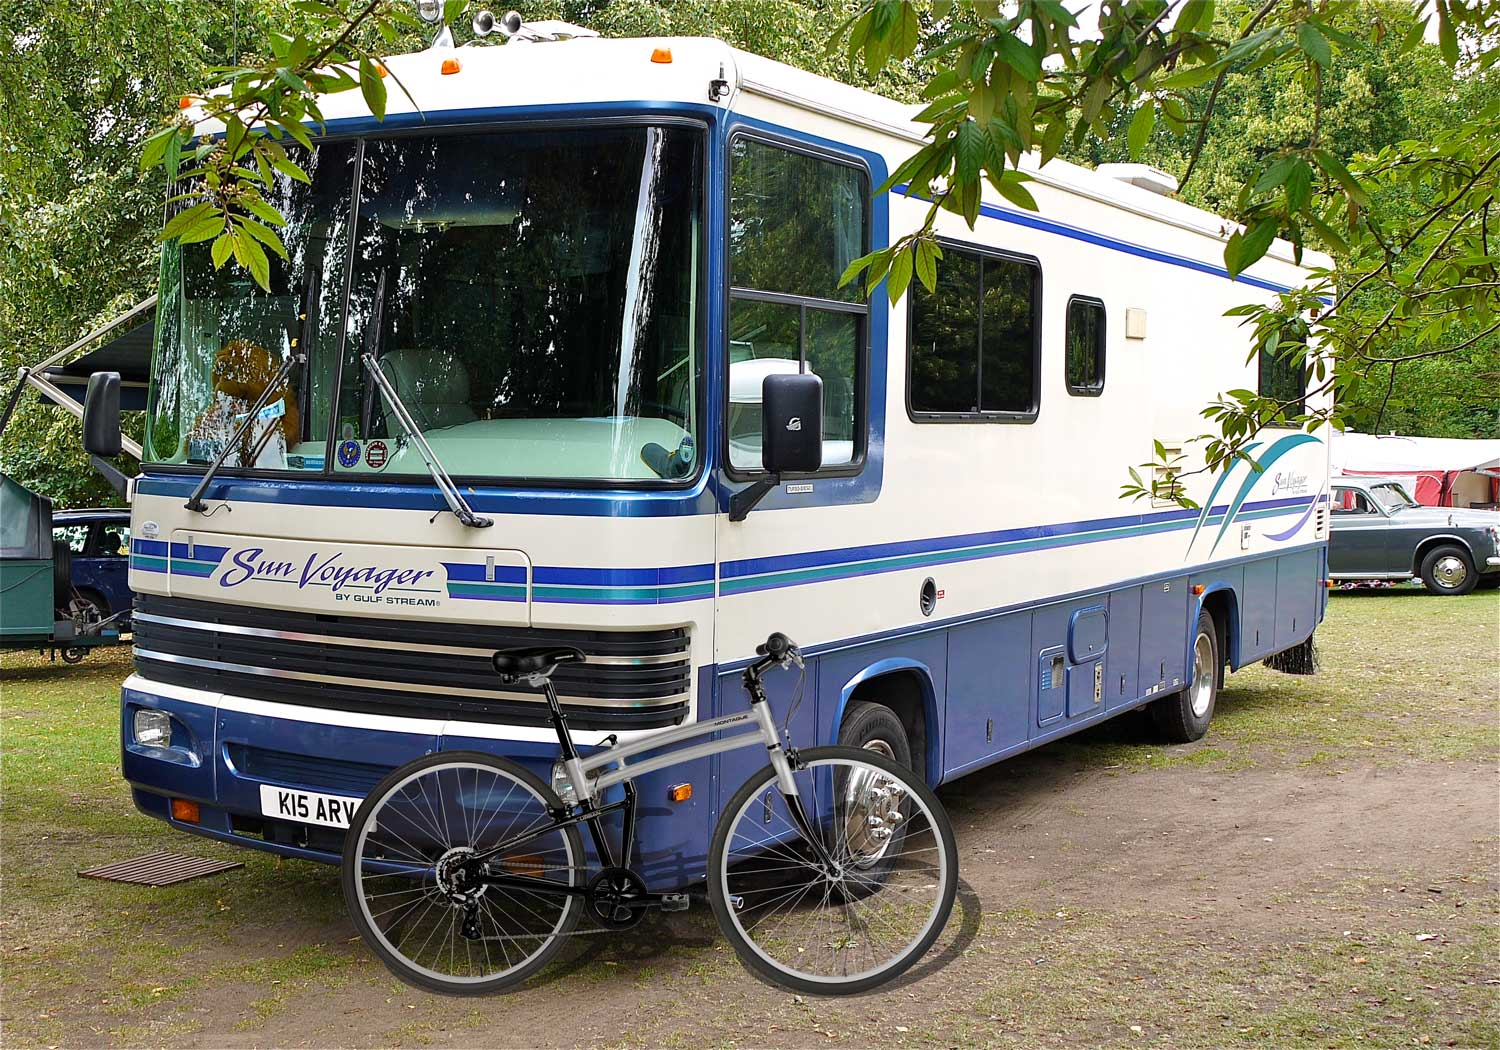 Crosstown Folding Bike Near RV Camper